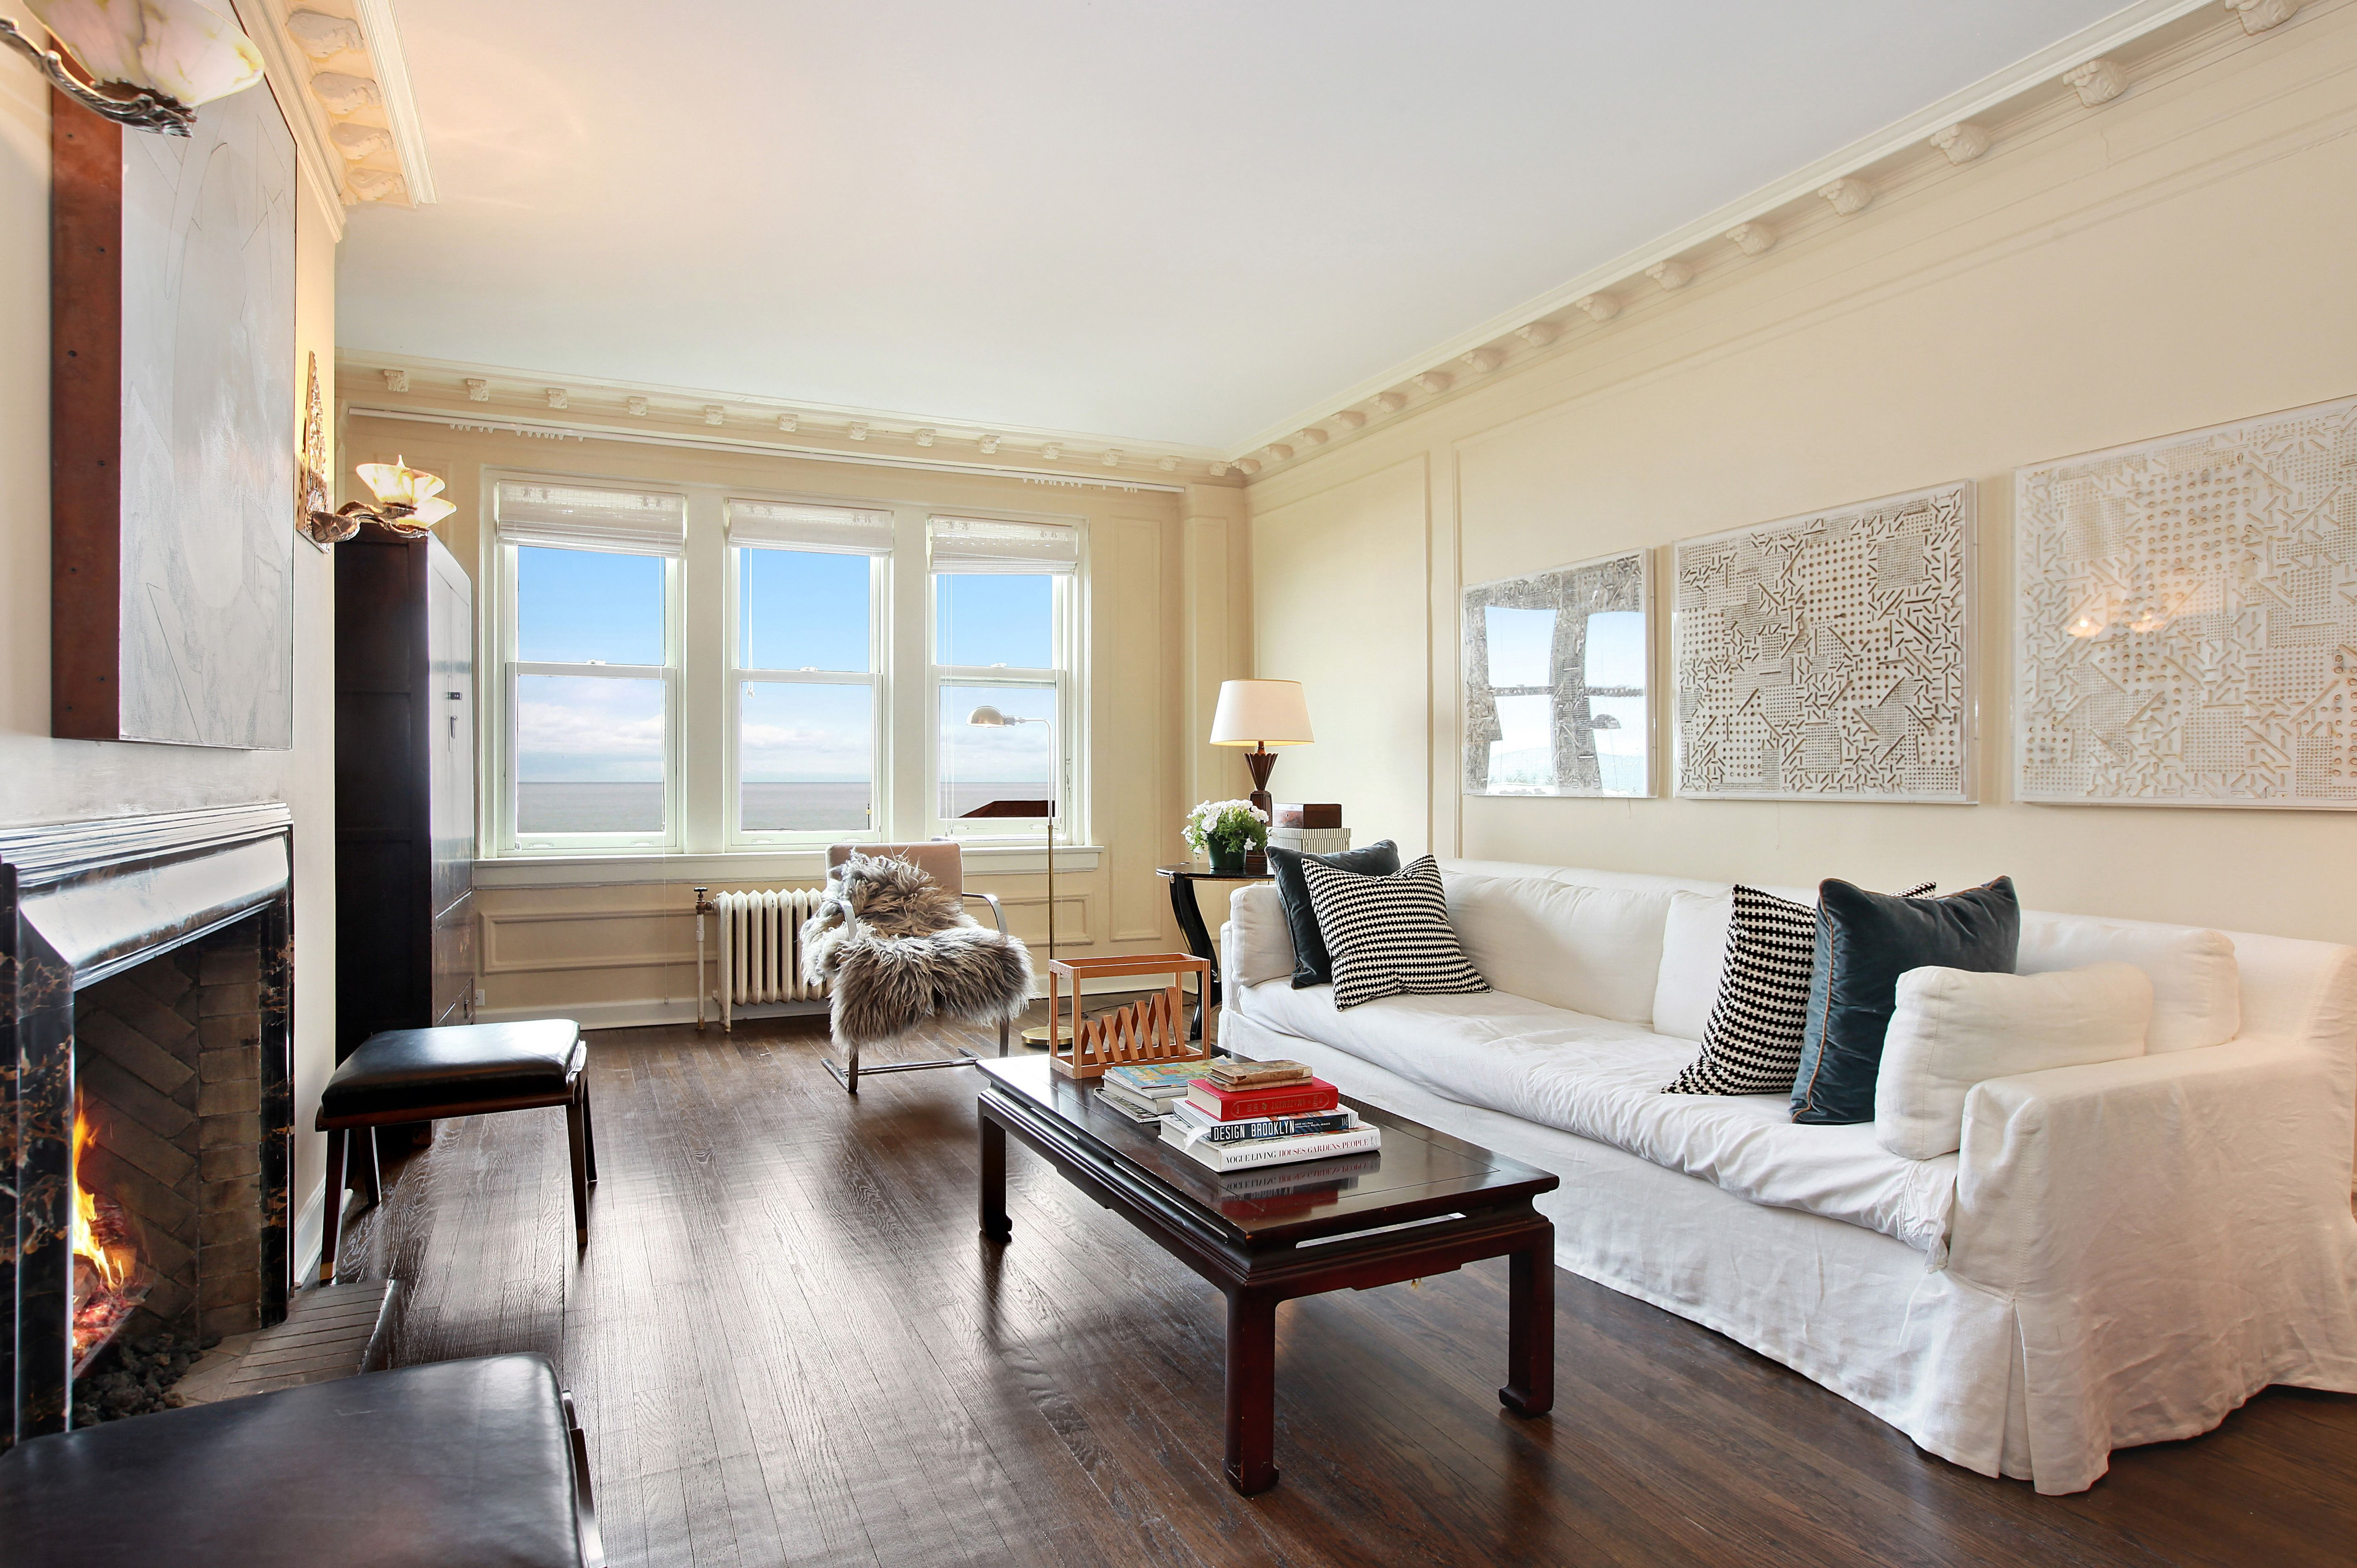 Sunny 3 Bedroom Apartment In Edgewater With Hardwood Floors Crown Molding And A Marble Fireplace Domu Chicago Apartm Bedroom Apartment Home Renting A House